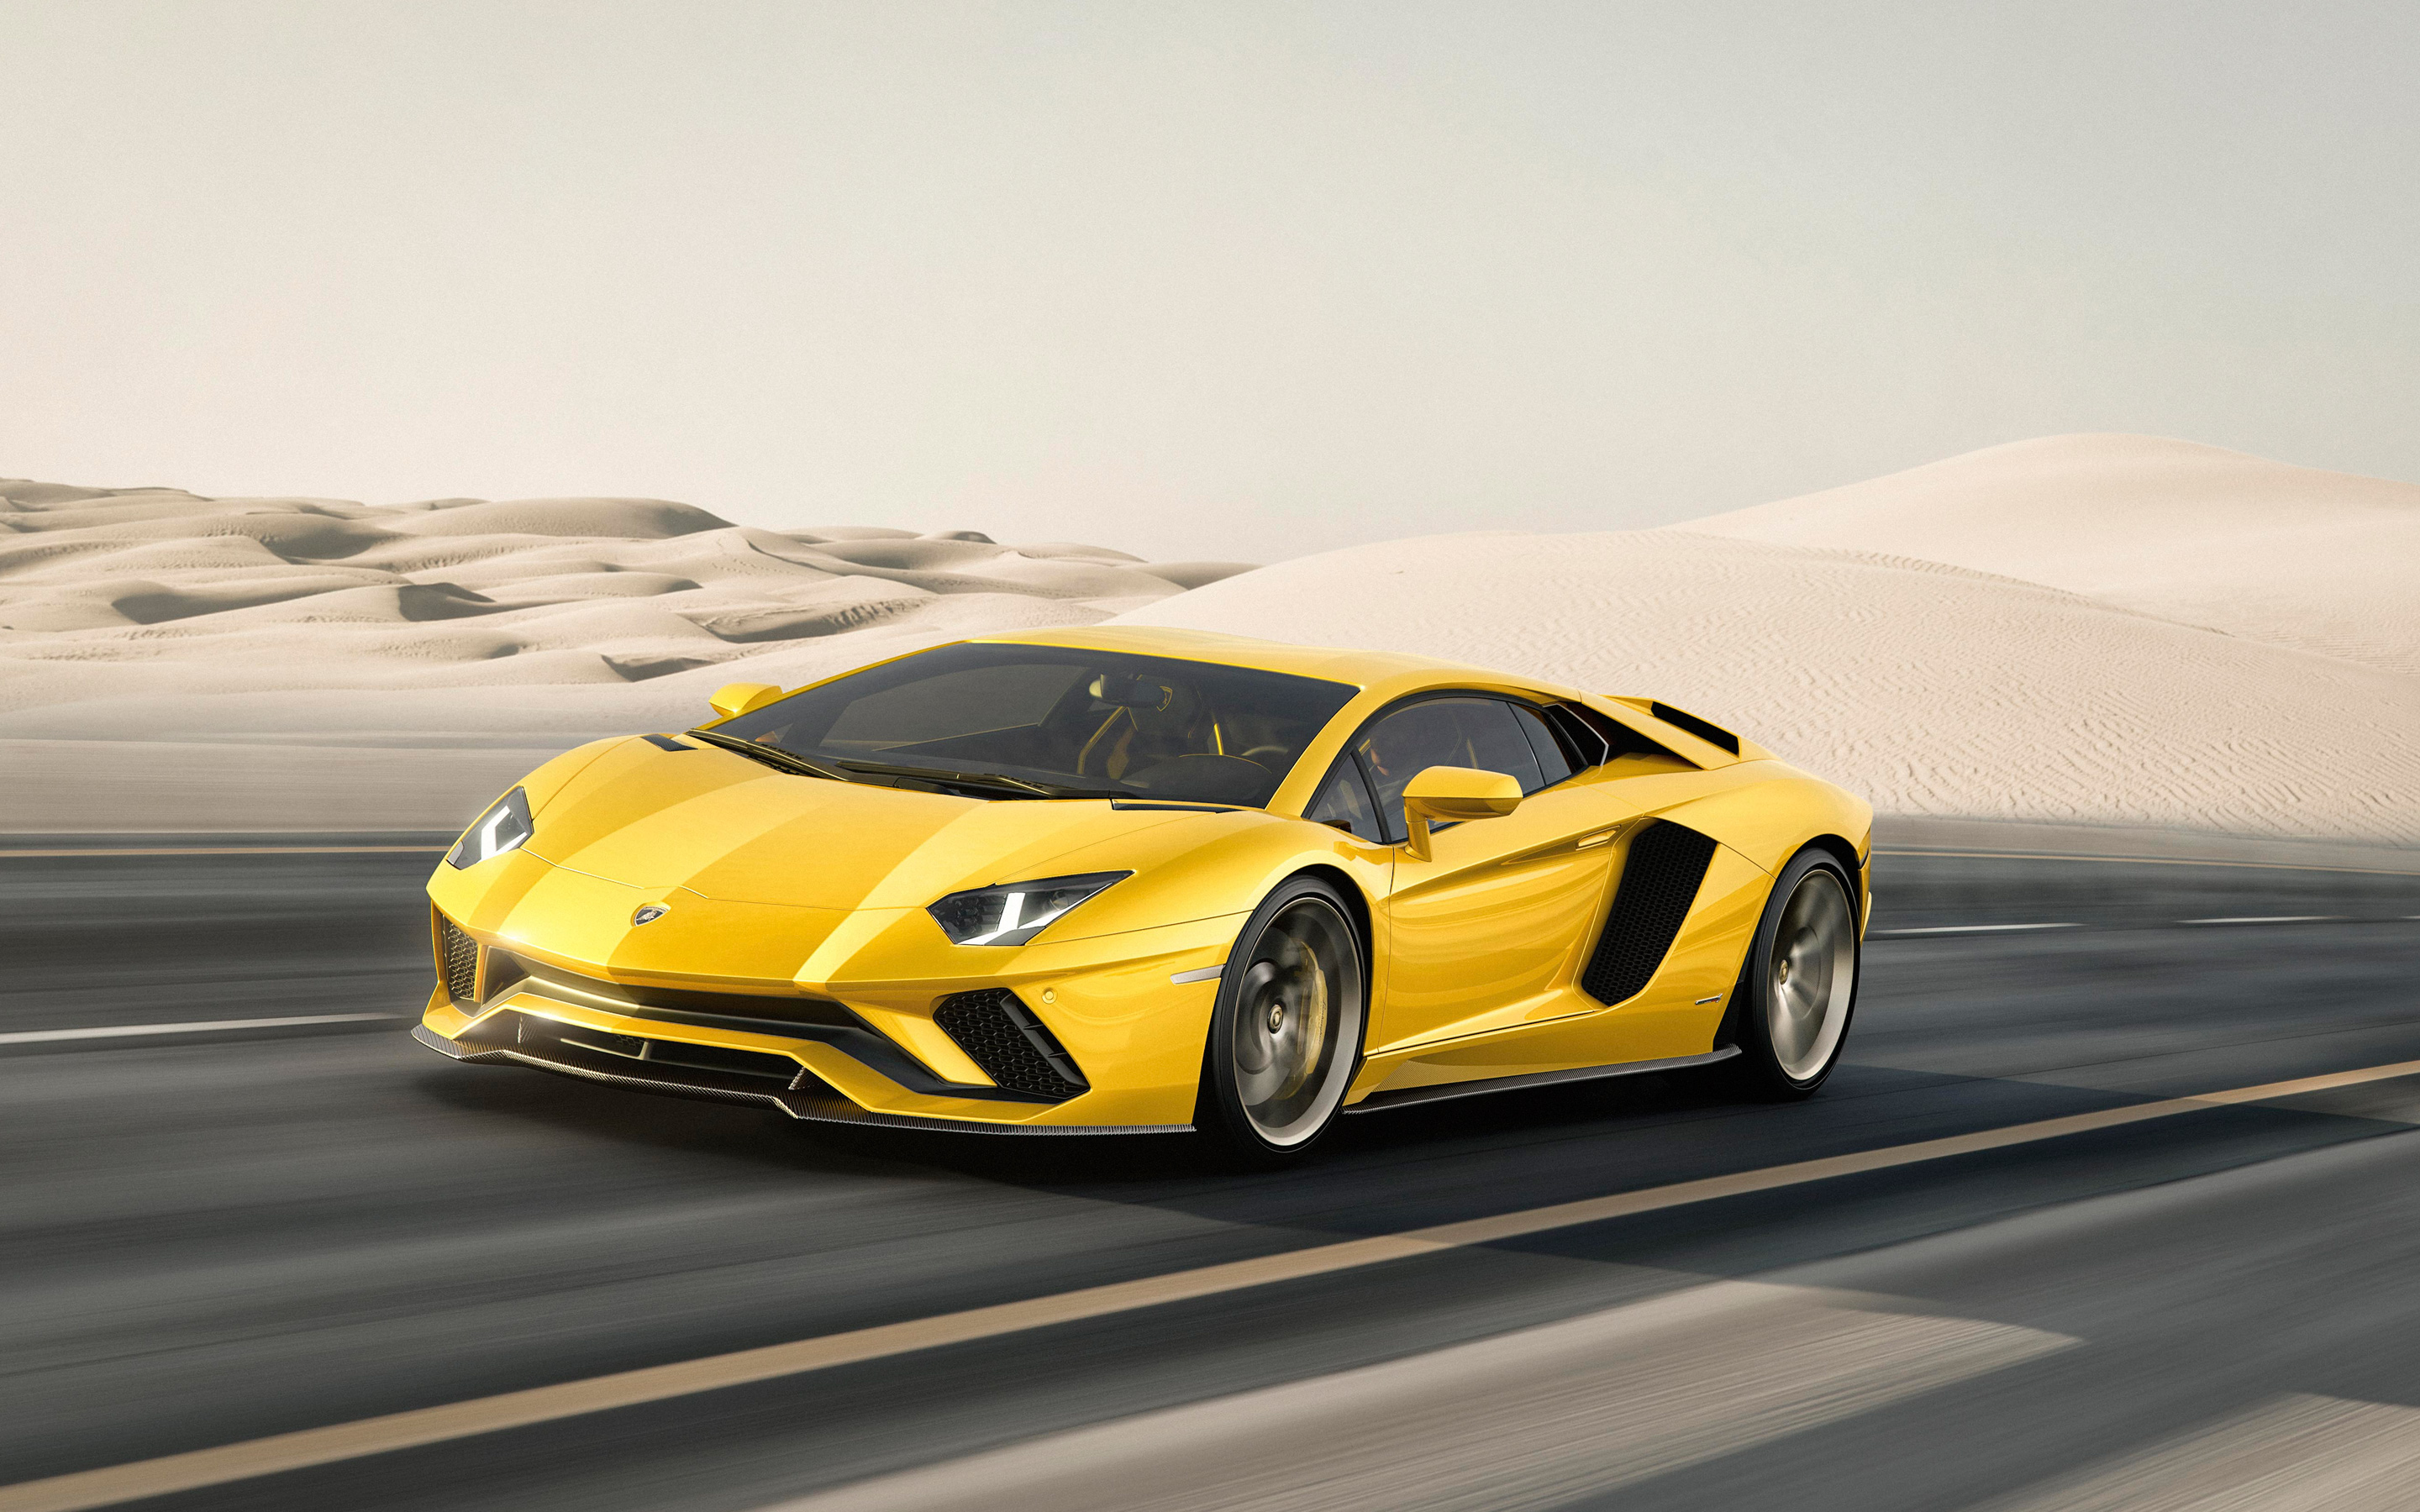 Aventador 4k Wallpapers For Your Desktop Or Mobile Screen Free And